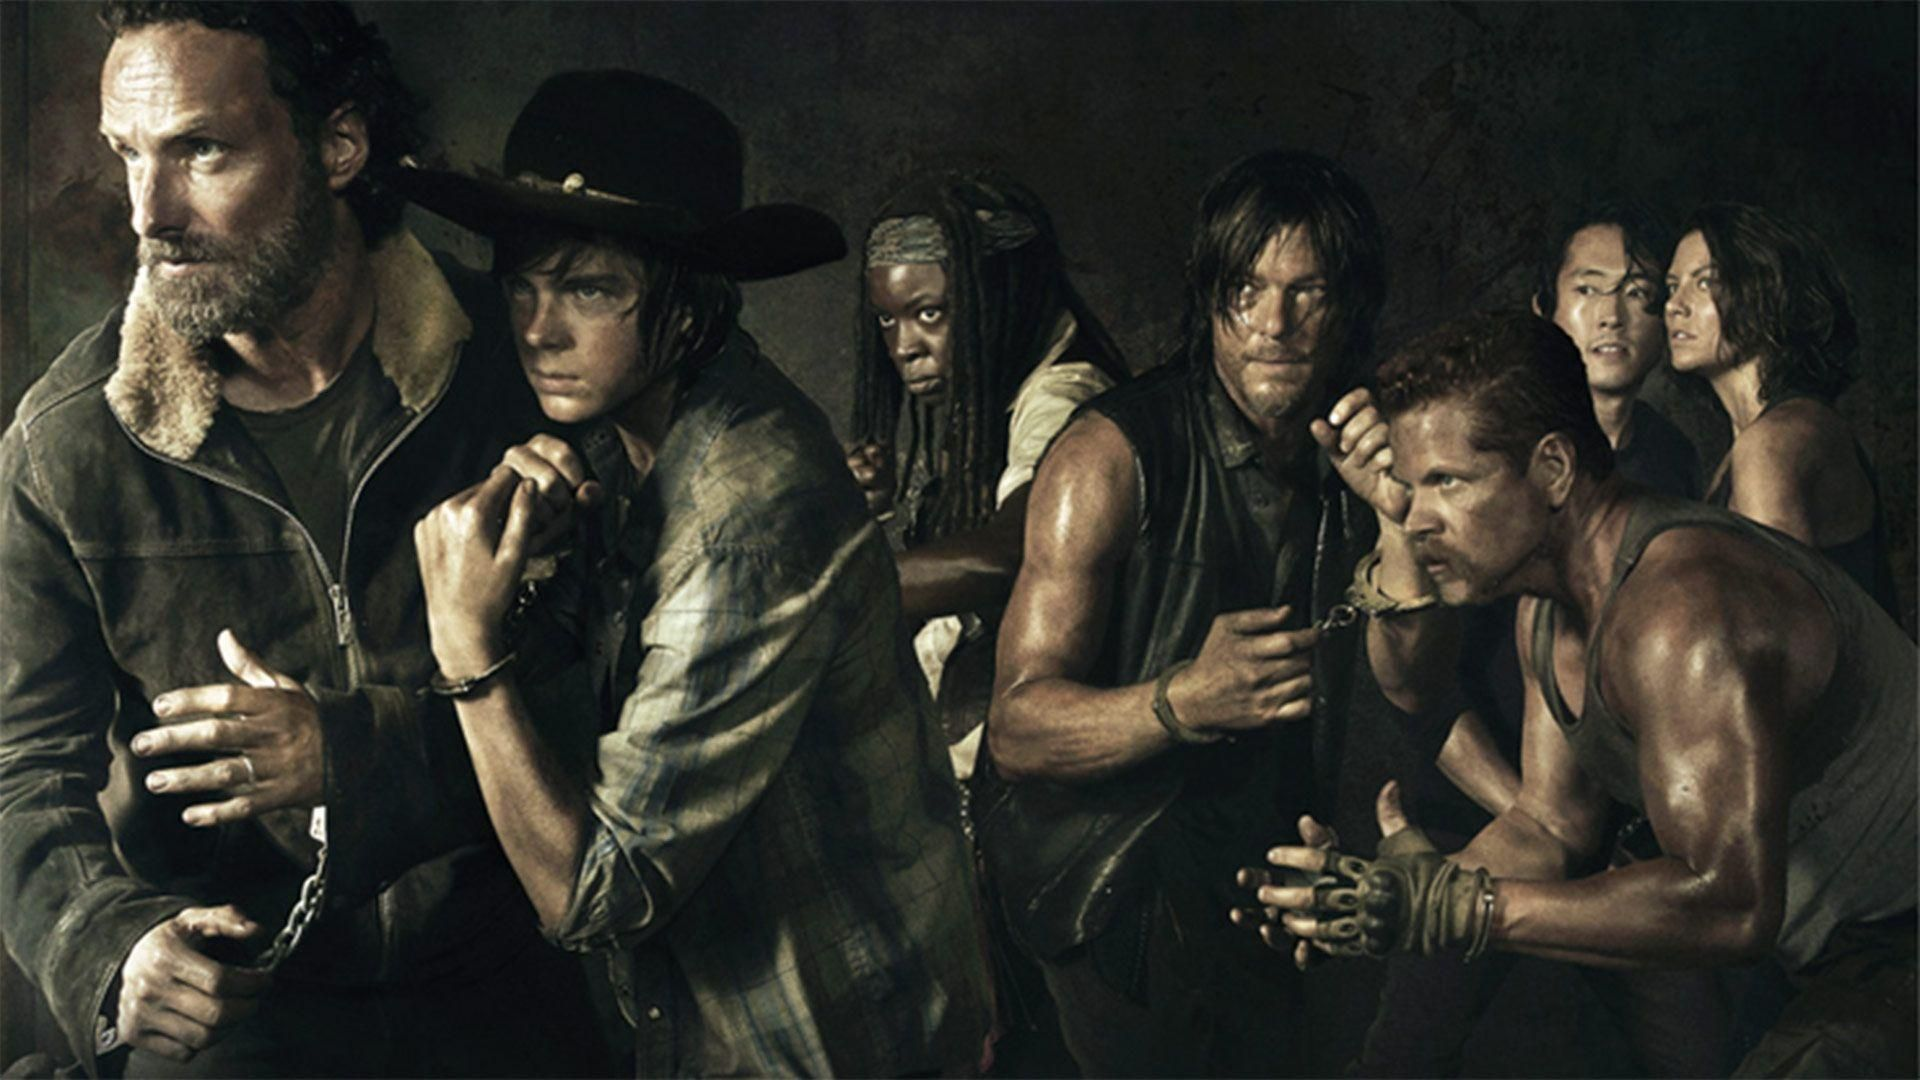 The last teaser for this new season suggests a new supply team composed of Rick and Daryl. Image Source: AMC